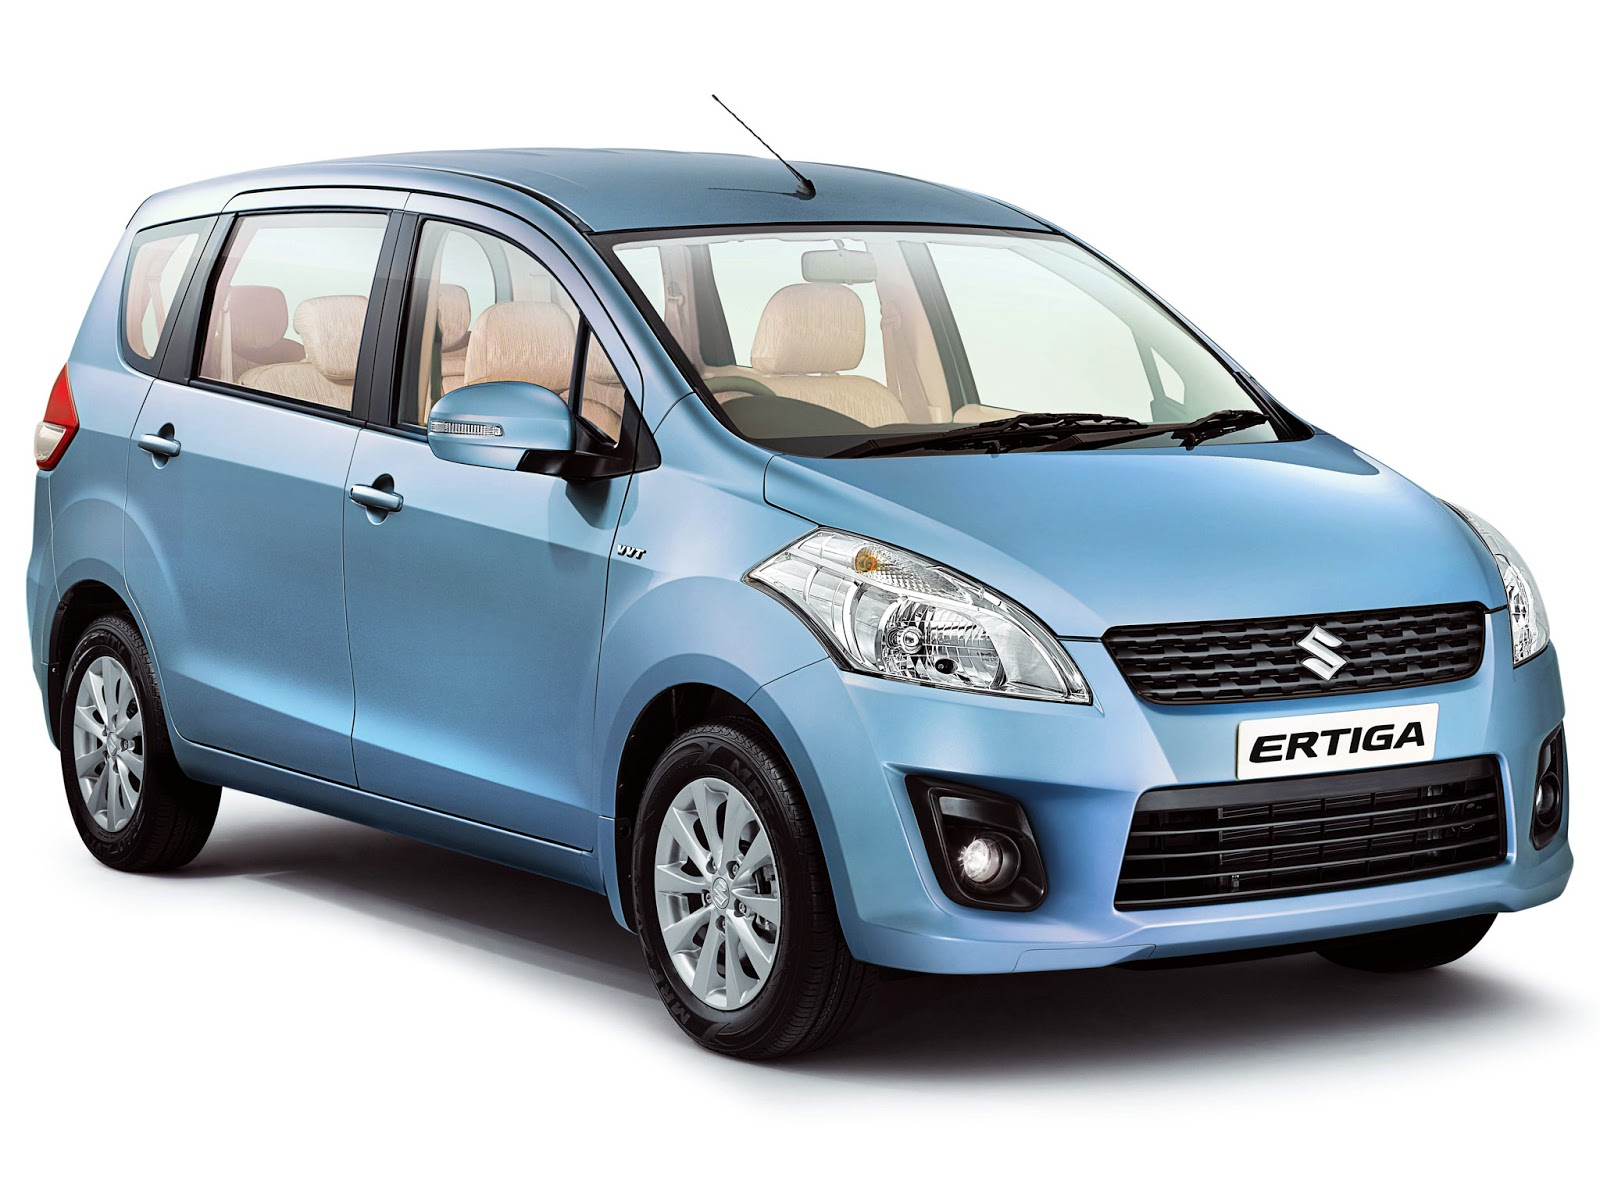 Maruti-Suzuki-Ertiga-Wallpapers.jpg